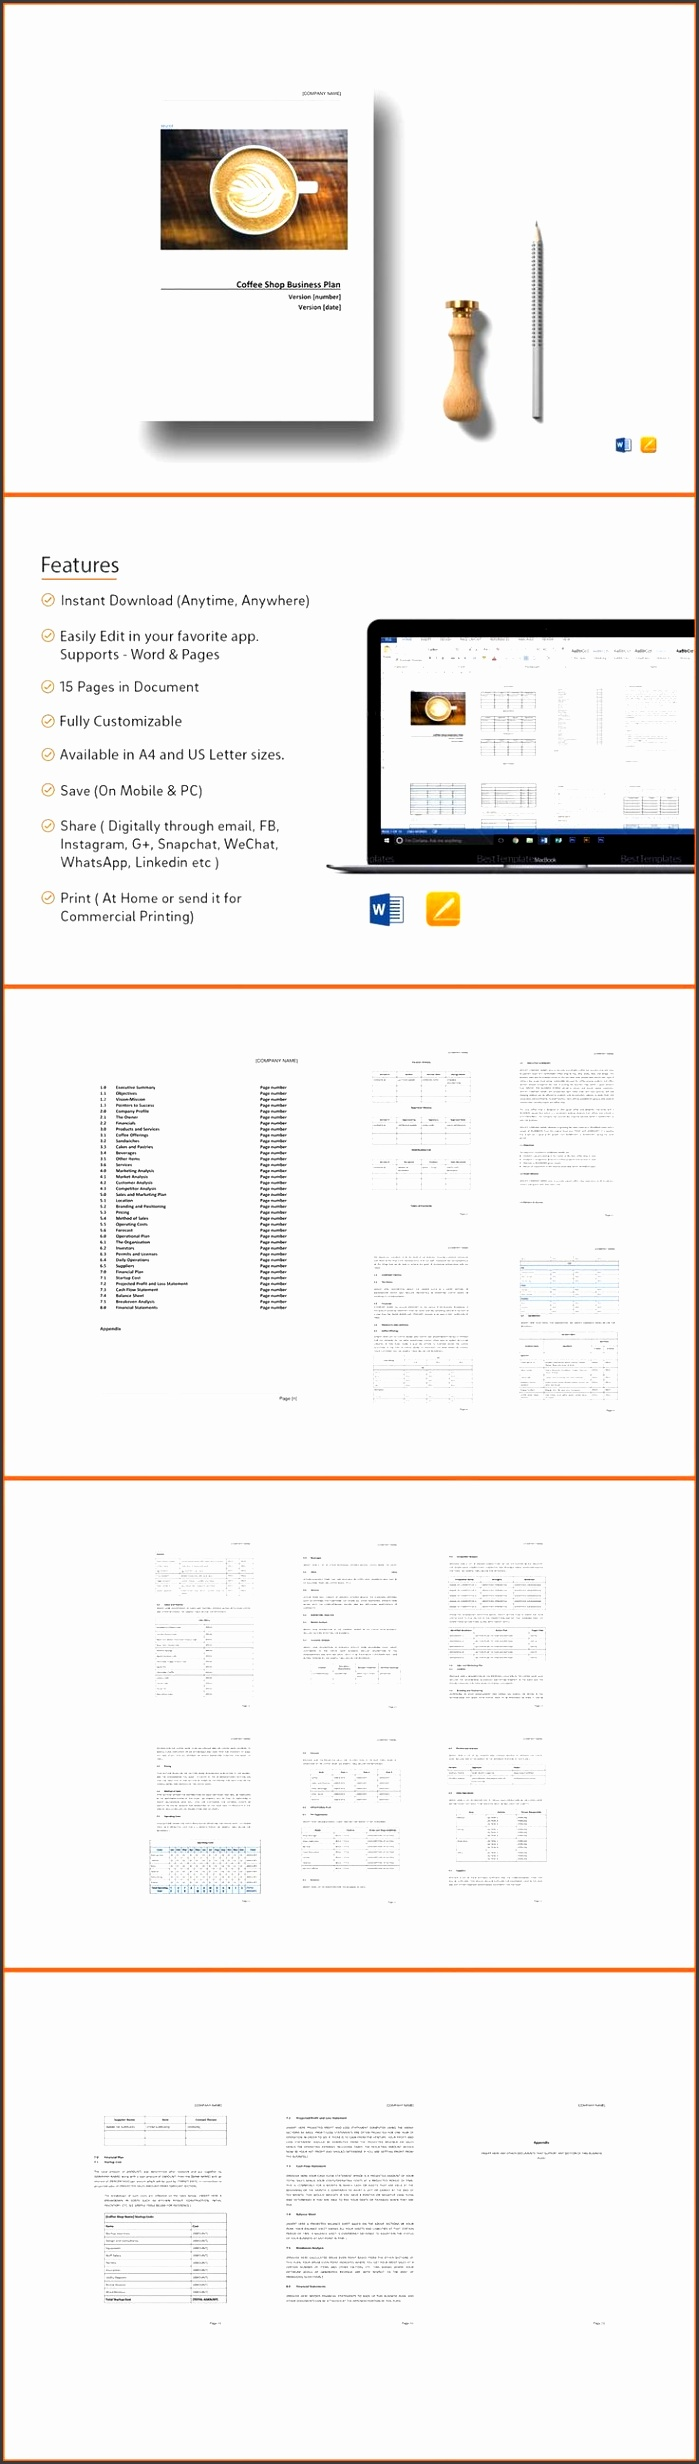 Coffee Shop Business Plan Template $21 Formats Included MS Word Pages File Size